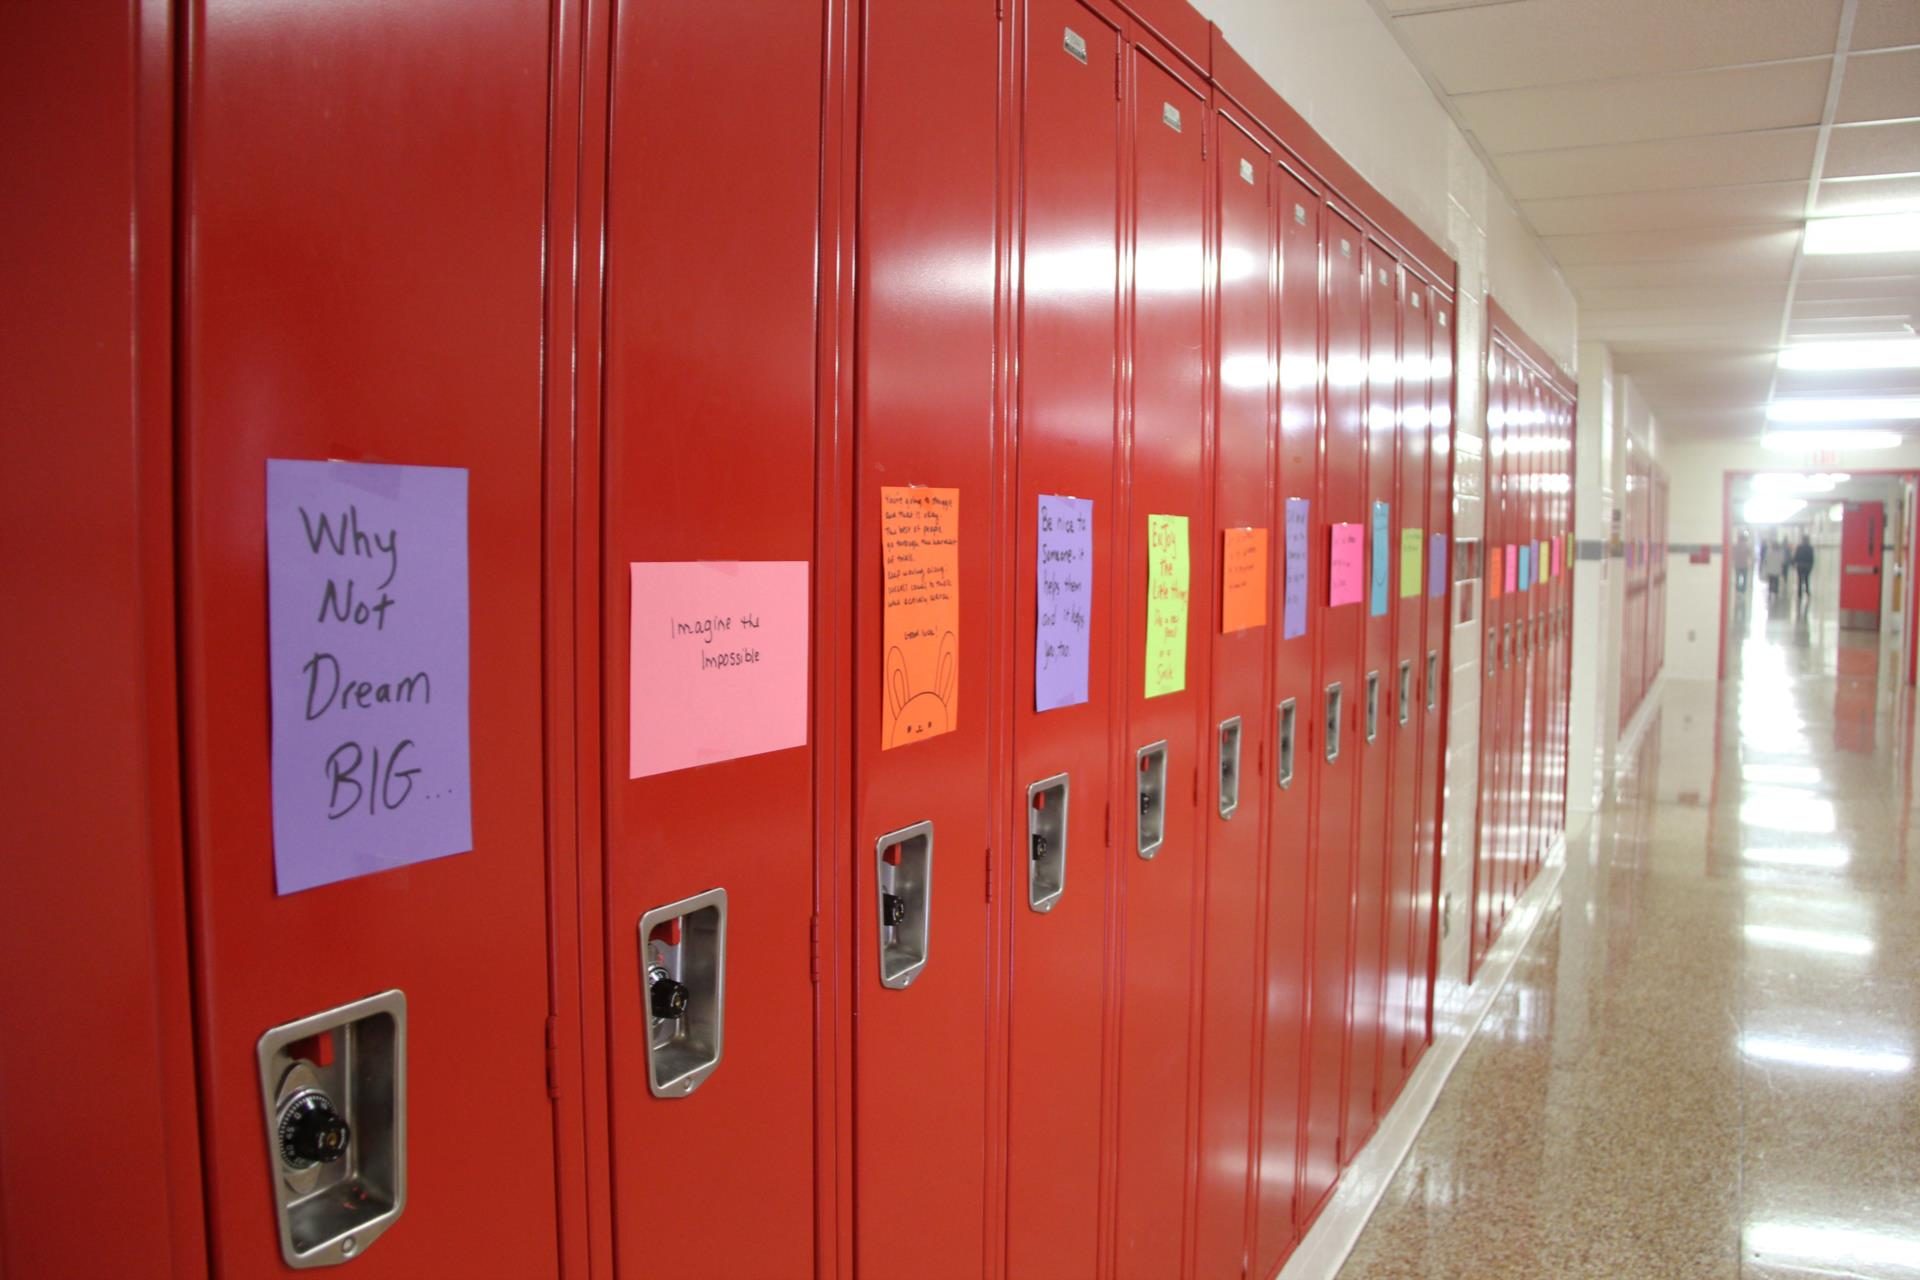 lockers lined with inspiring messages